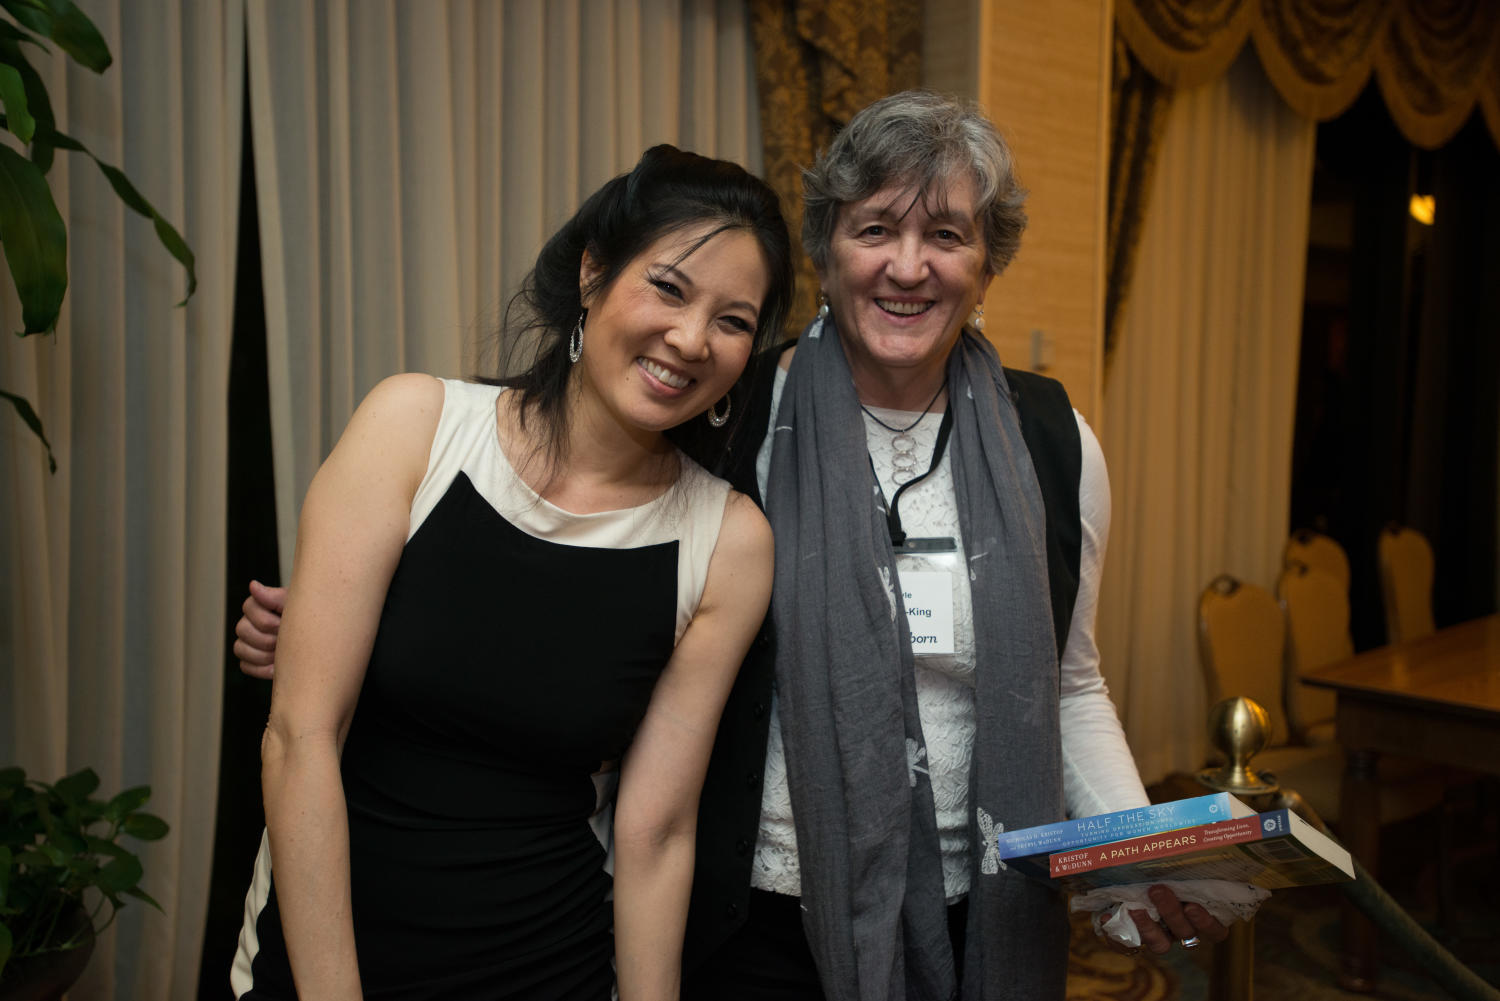 """[Sheryl WuDunn standing with a conference attendee], Photograph of Sheryl WuDunn (left) standing with a conference attendee who is holding copies of two of WuDunns books. A few letters of the womans name are visible on her name-tag, from the top """"-le"""" and then """"-King"""" in the section for last names. The book signing took place after the Literary Lights Dinner during the Mayborn Literary Nonfiction Conference. The conference was held at the Hilton DFW Lakes Executive Conference Center, Grapevine, TX.,"""